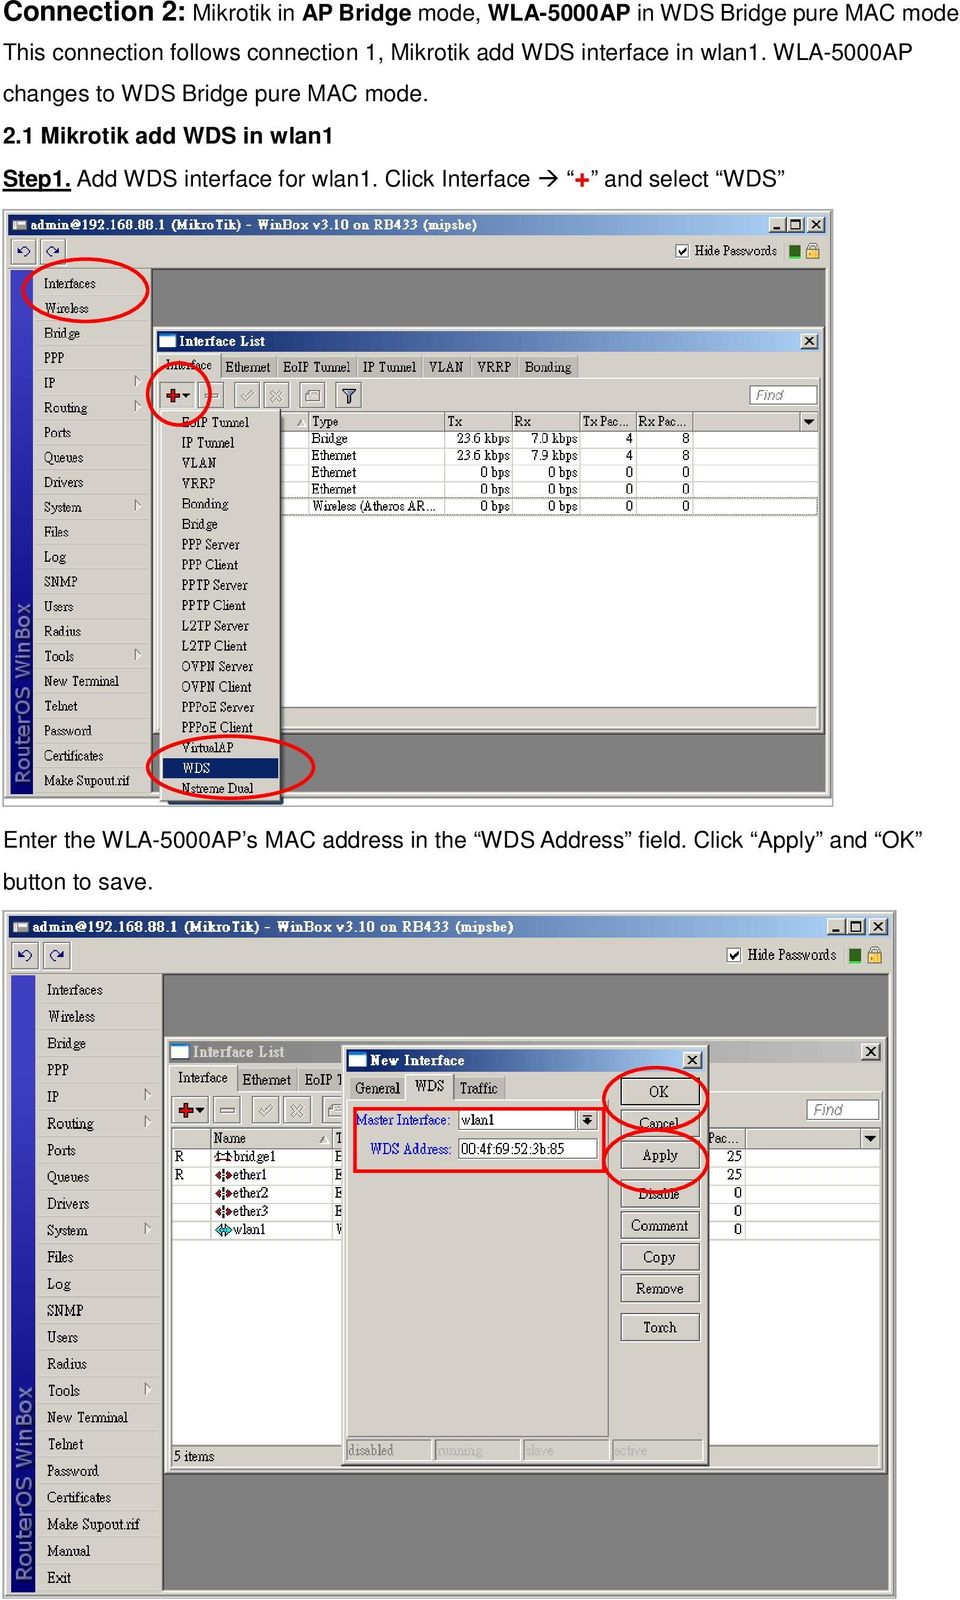 WLA-5000AP changes to WDS Bridge pure MAC mode. 2.1 Mikrotik add WDS in wlan1 Step1.